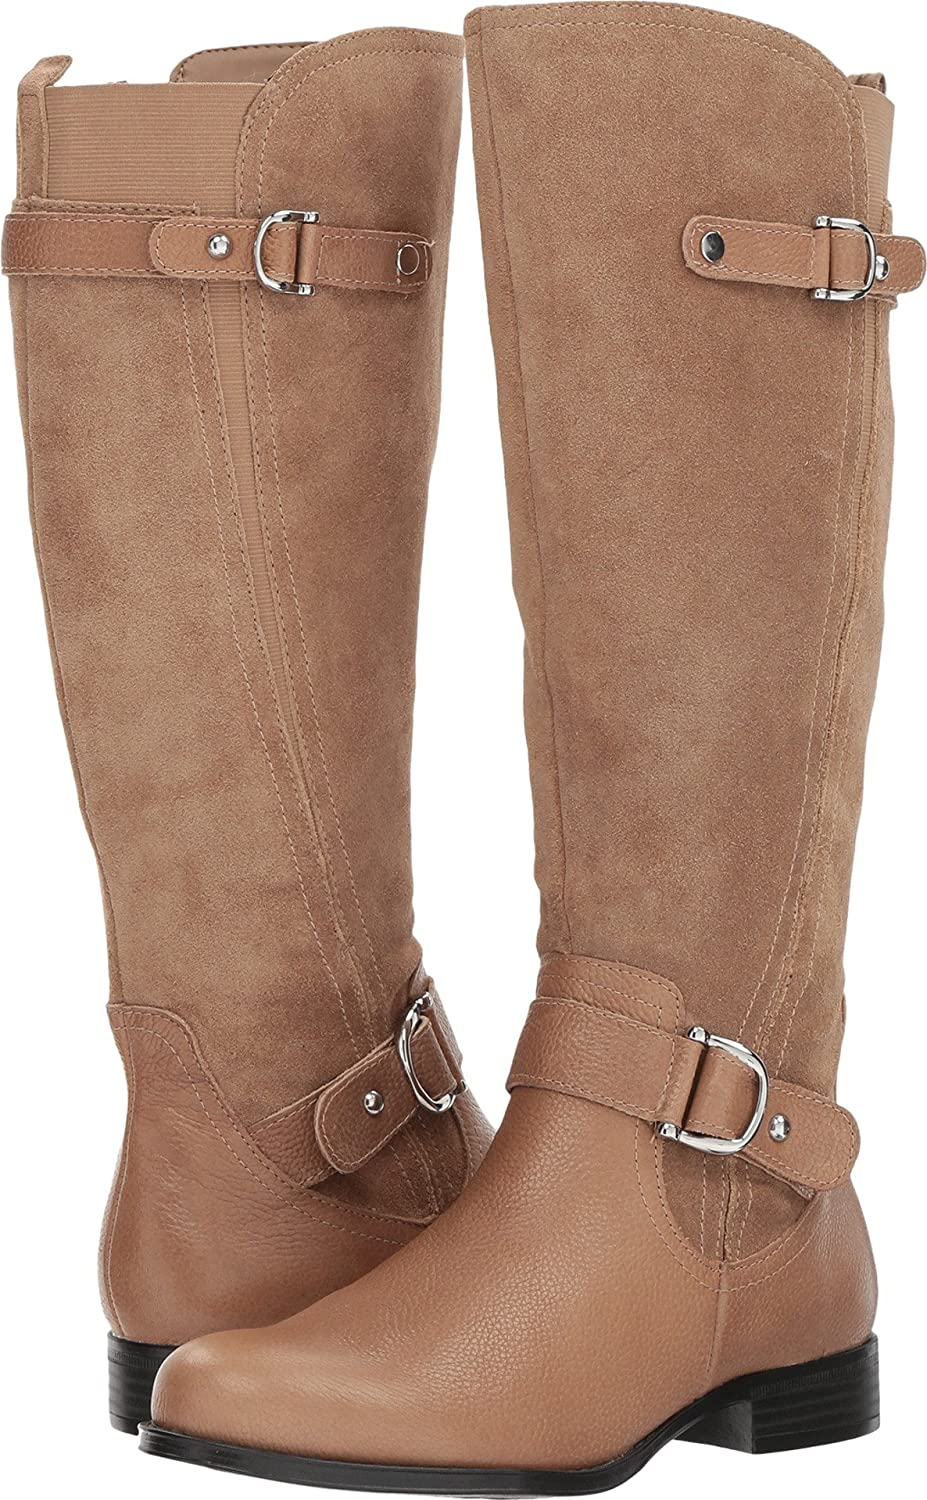 Naturalizer Women's Jenelle Riding Boot B0716CTD1N 7 E US|Oatmeal Leather